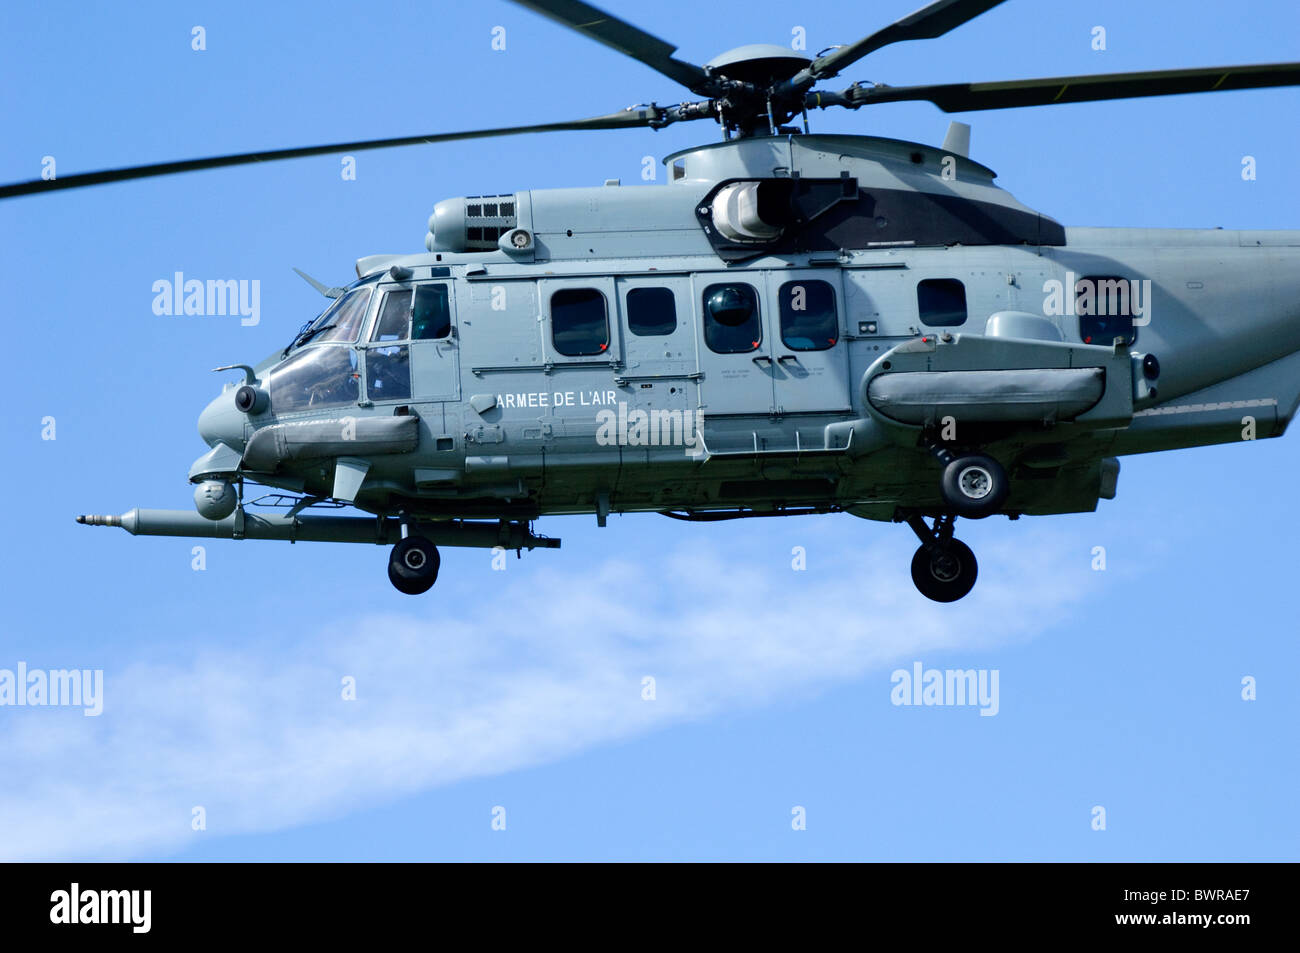 Eurocopter EC-725R2 Caracal operated by the French Air Force on approach for landing at RAF Fairford - Stock Image